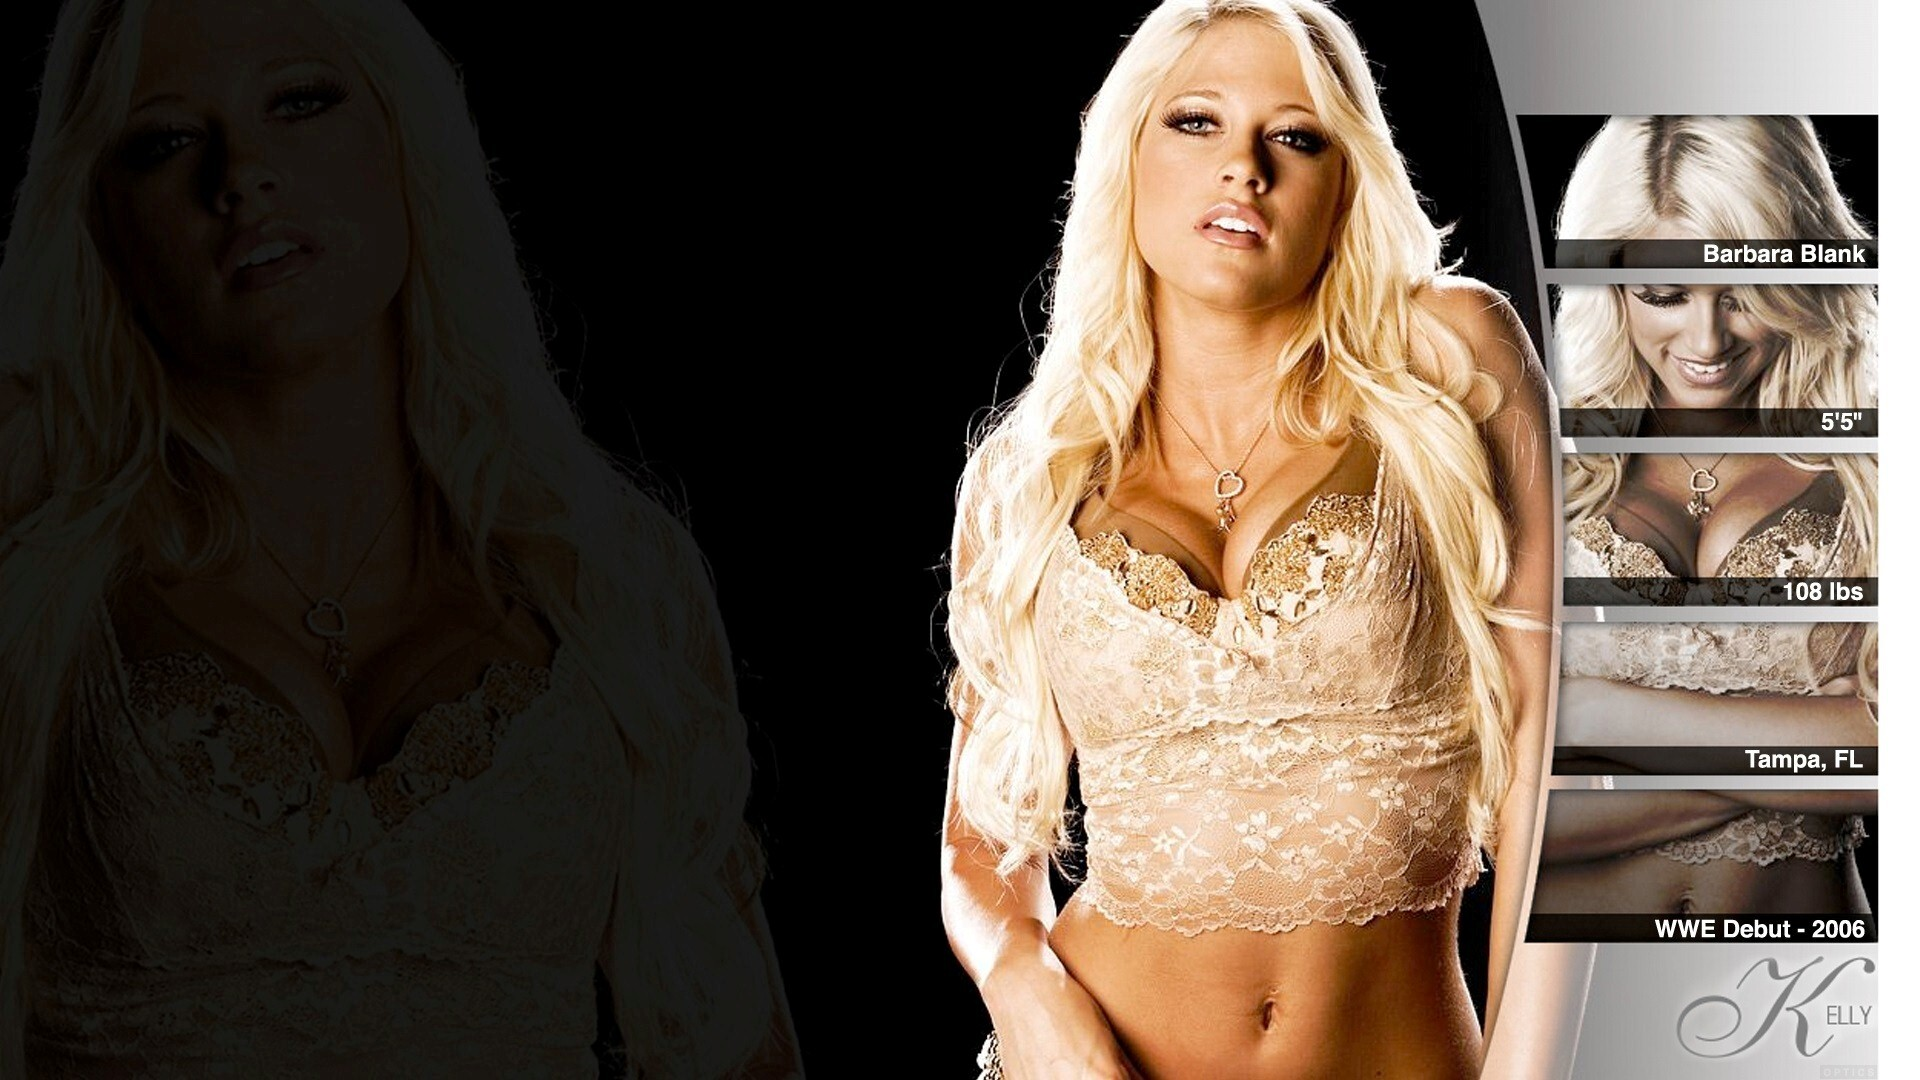 kelly kelly hd wallpapers images pictures photos download